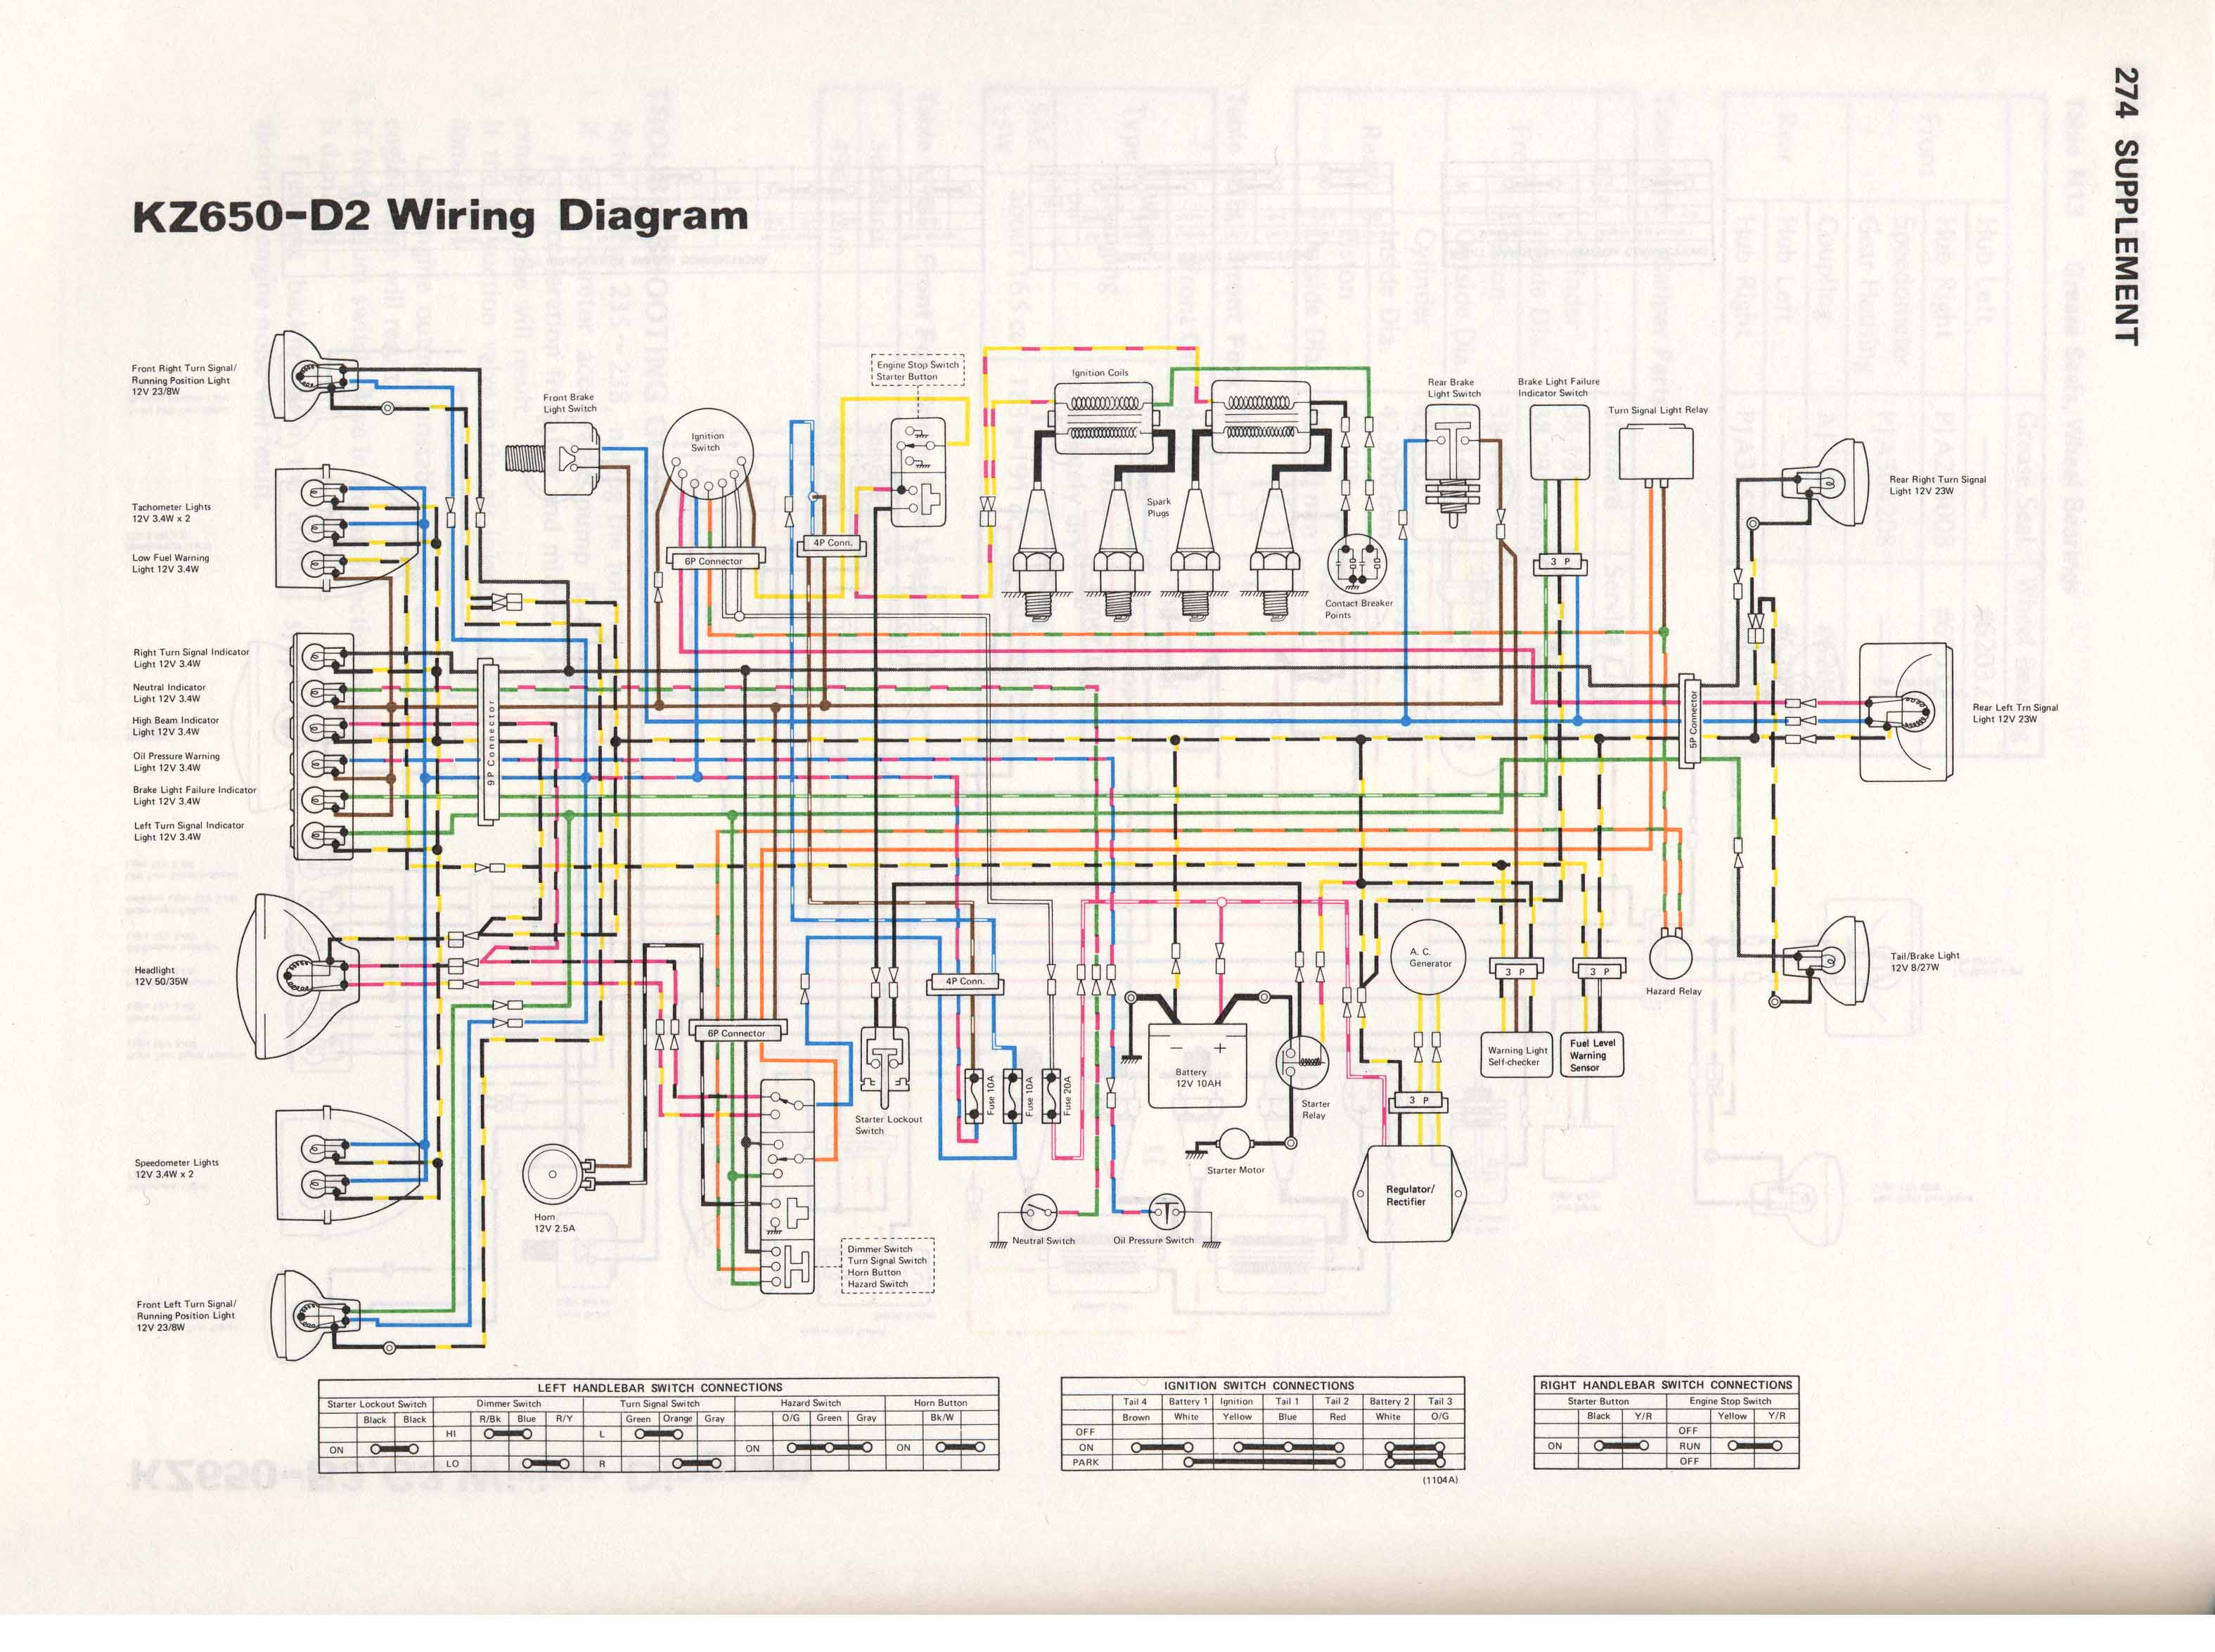 KZ650 D2 kz650 info wiring diagrams wiring diagram for victory motorcycles at bayanpartner.co